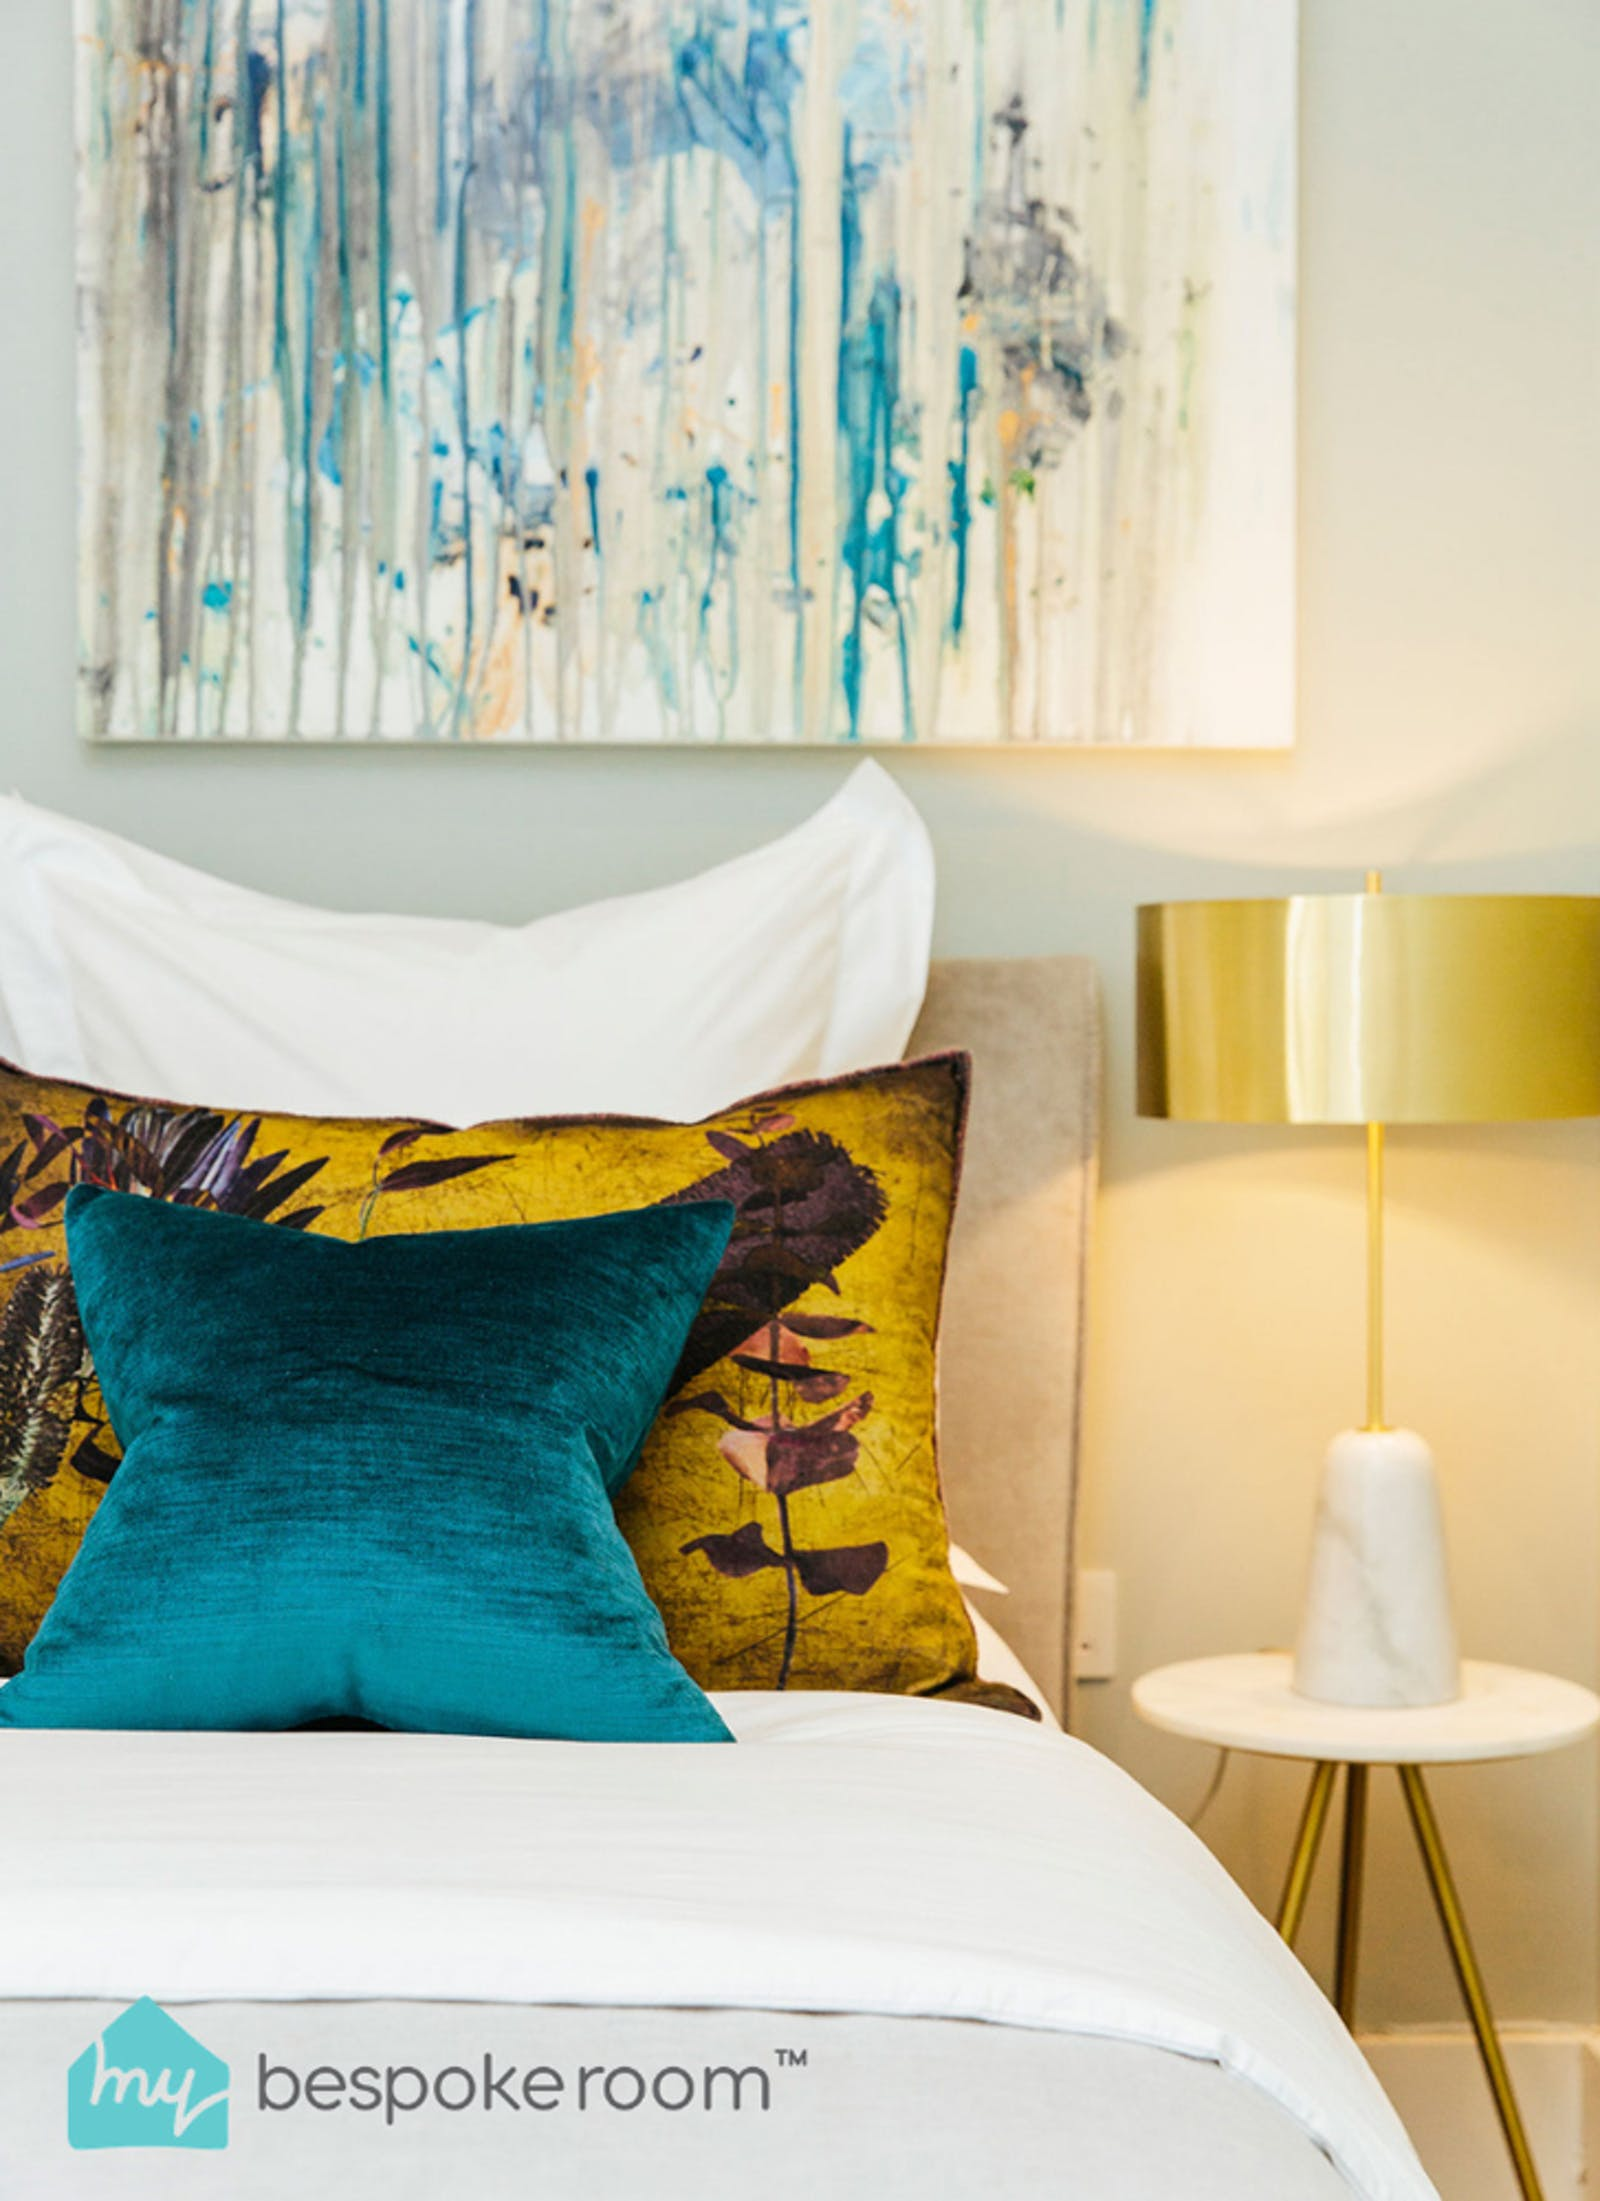 Image of bedroom with yellow and turquoise pillows